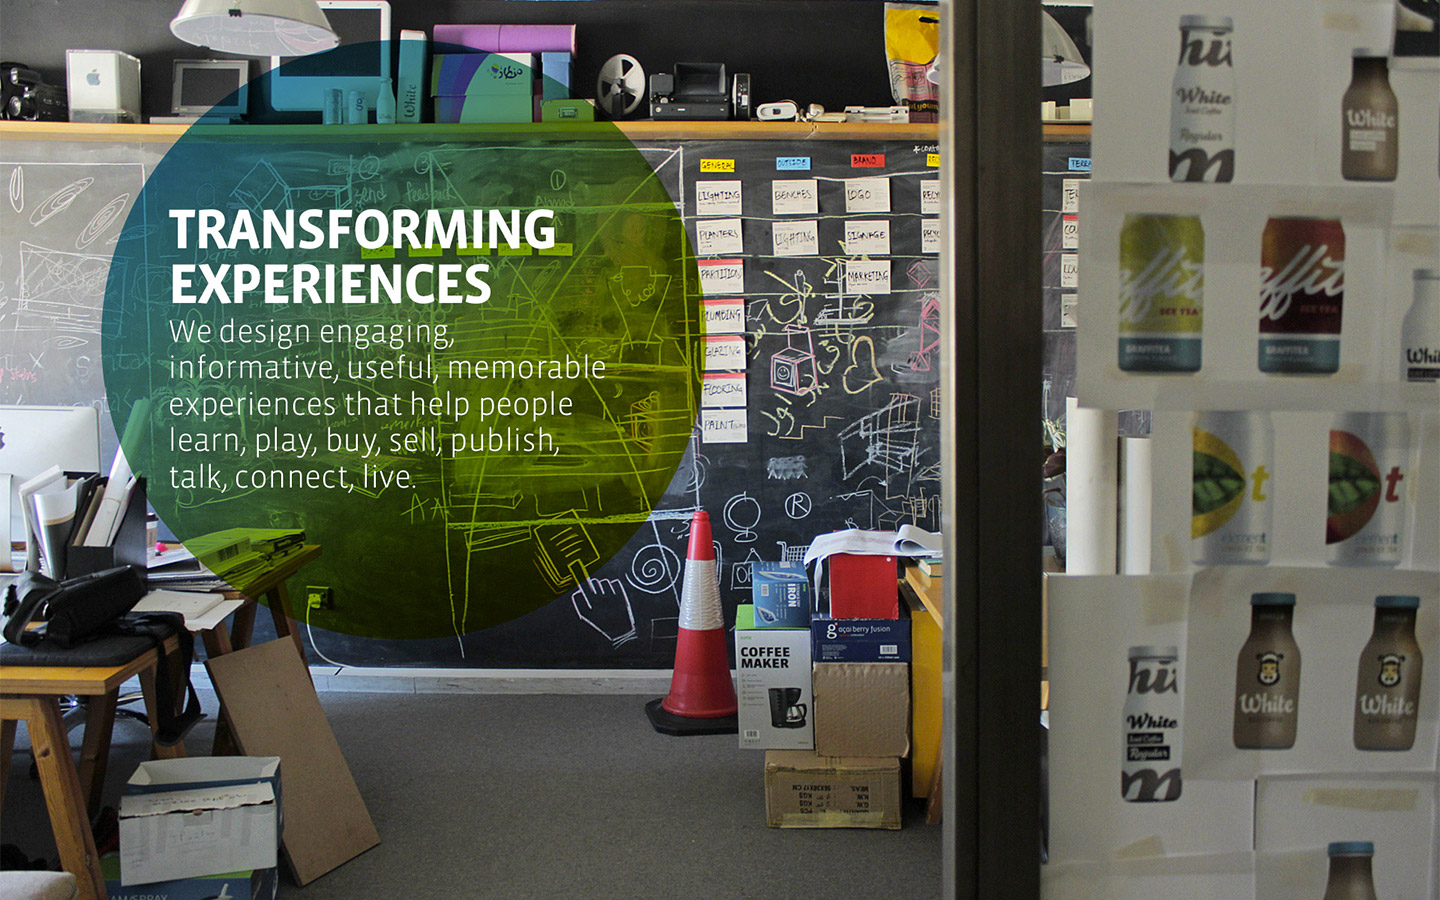 SYNTAX / TRANSFORMING EXPERIENCES